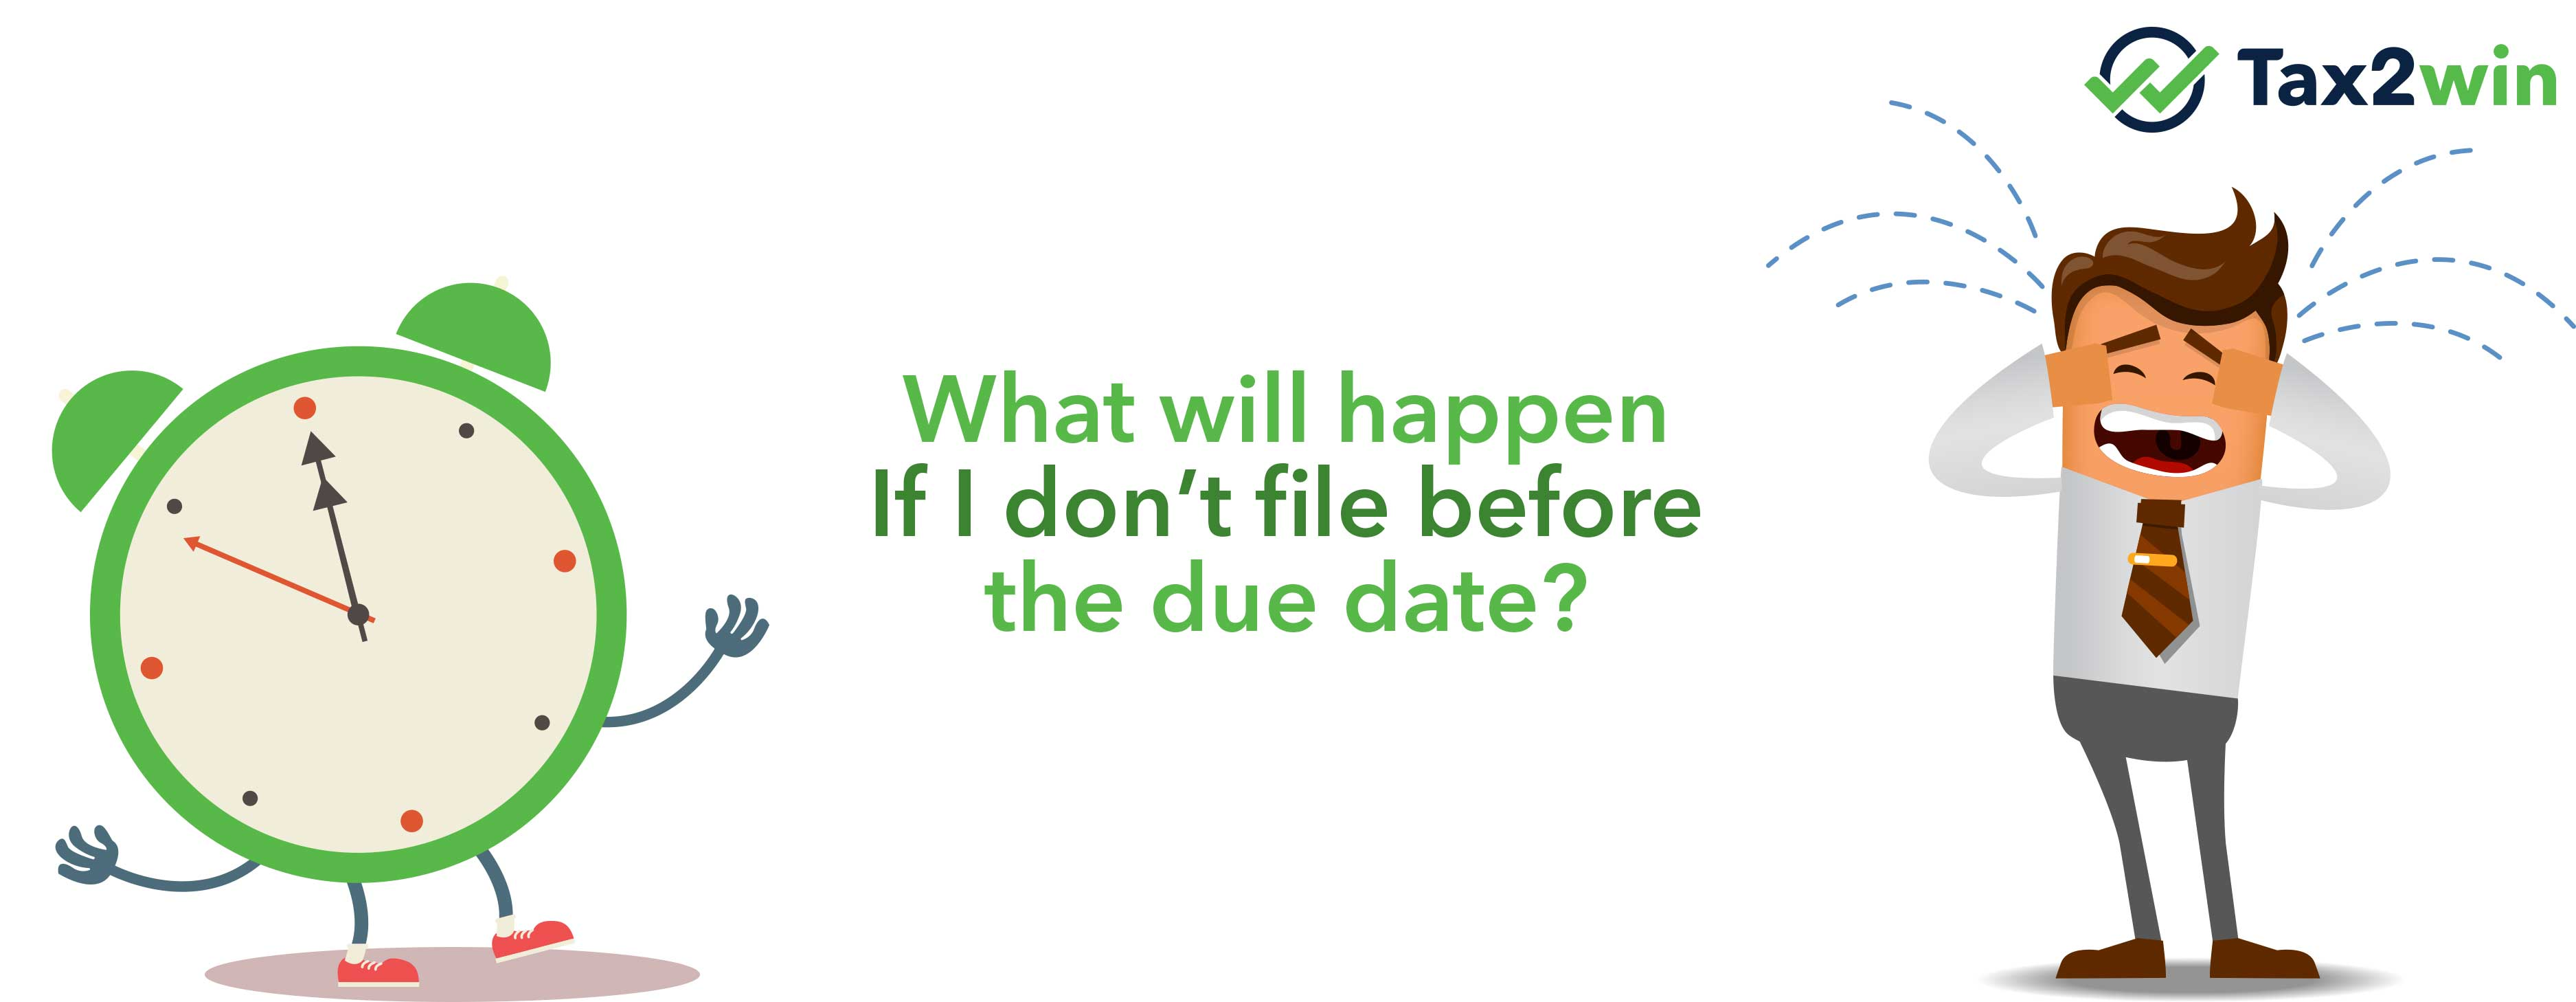 What will happen if I don't file before the due date?